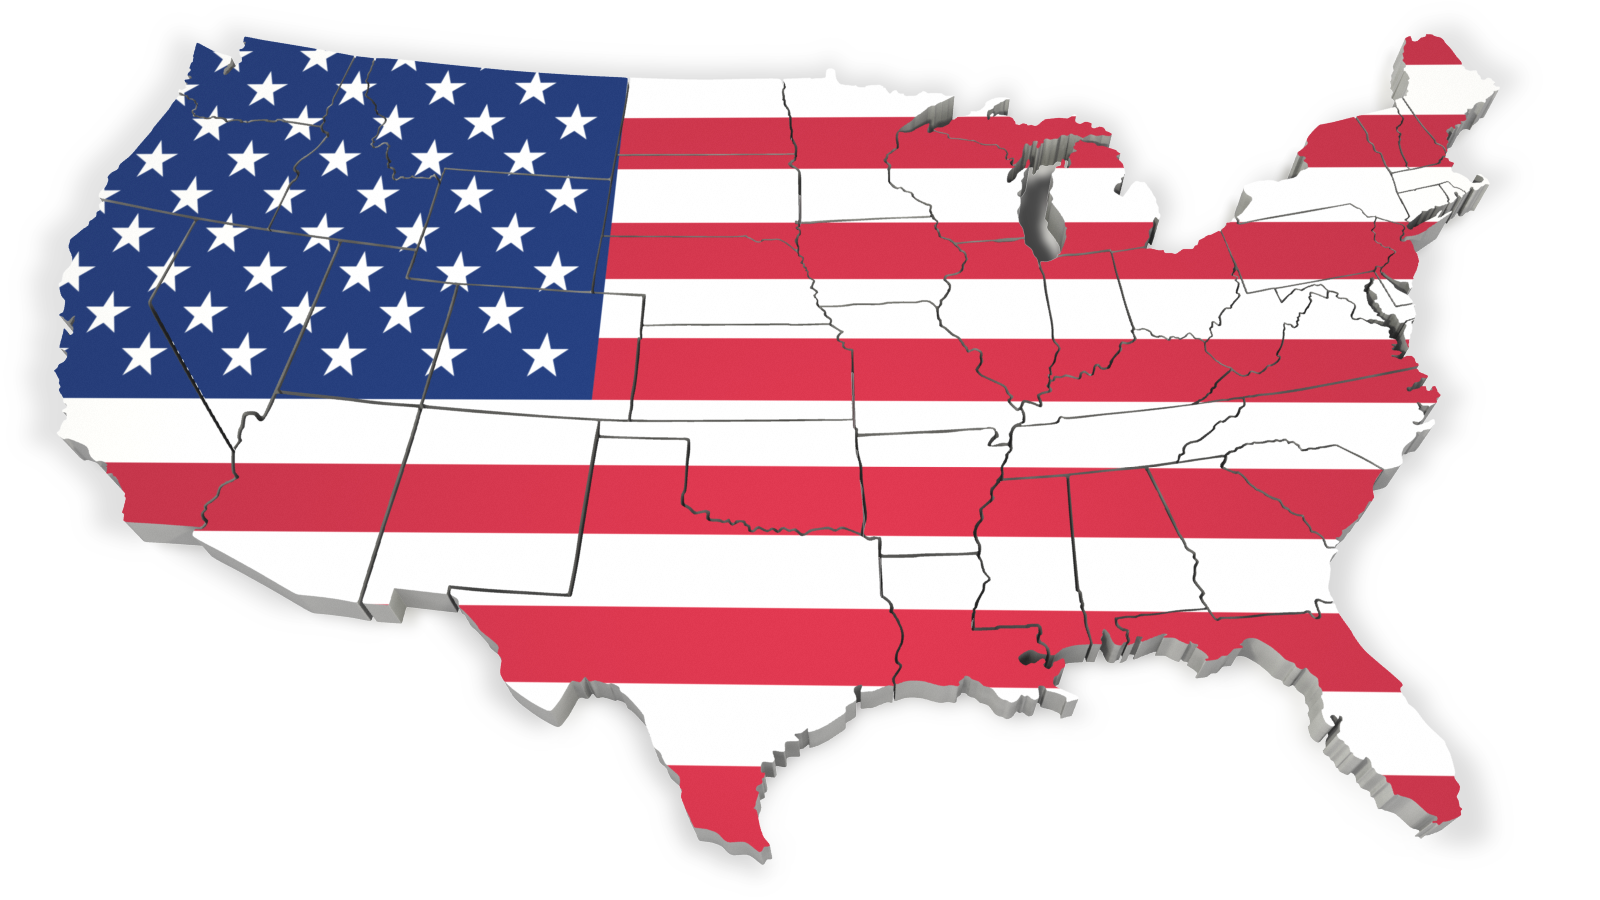 United states outline clipart red - ClipartFest graphic royalty free stock